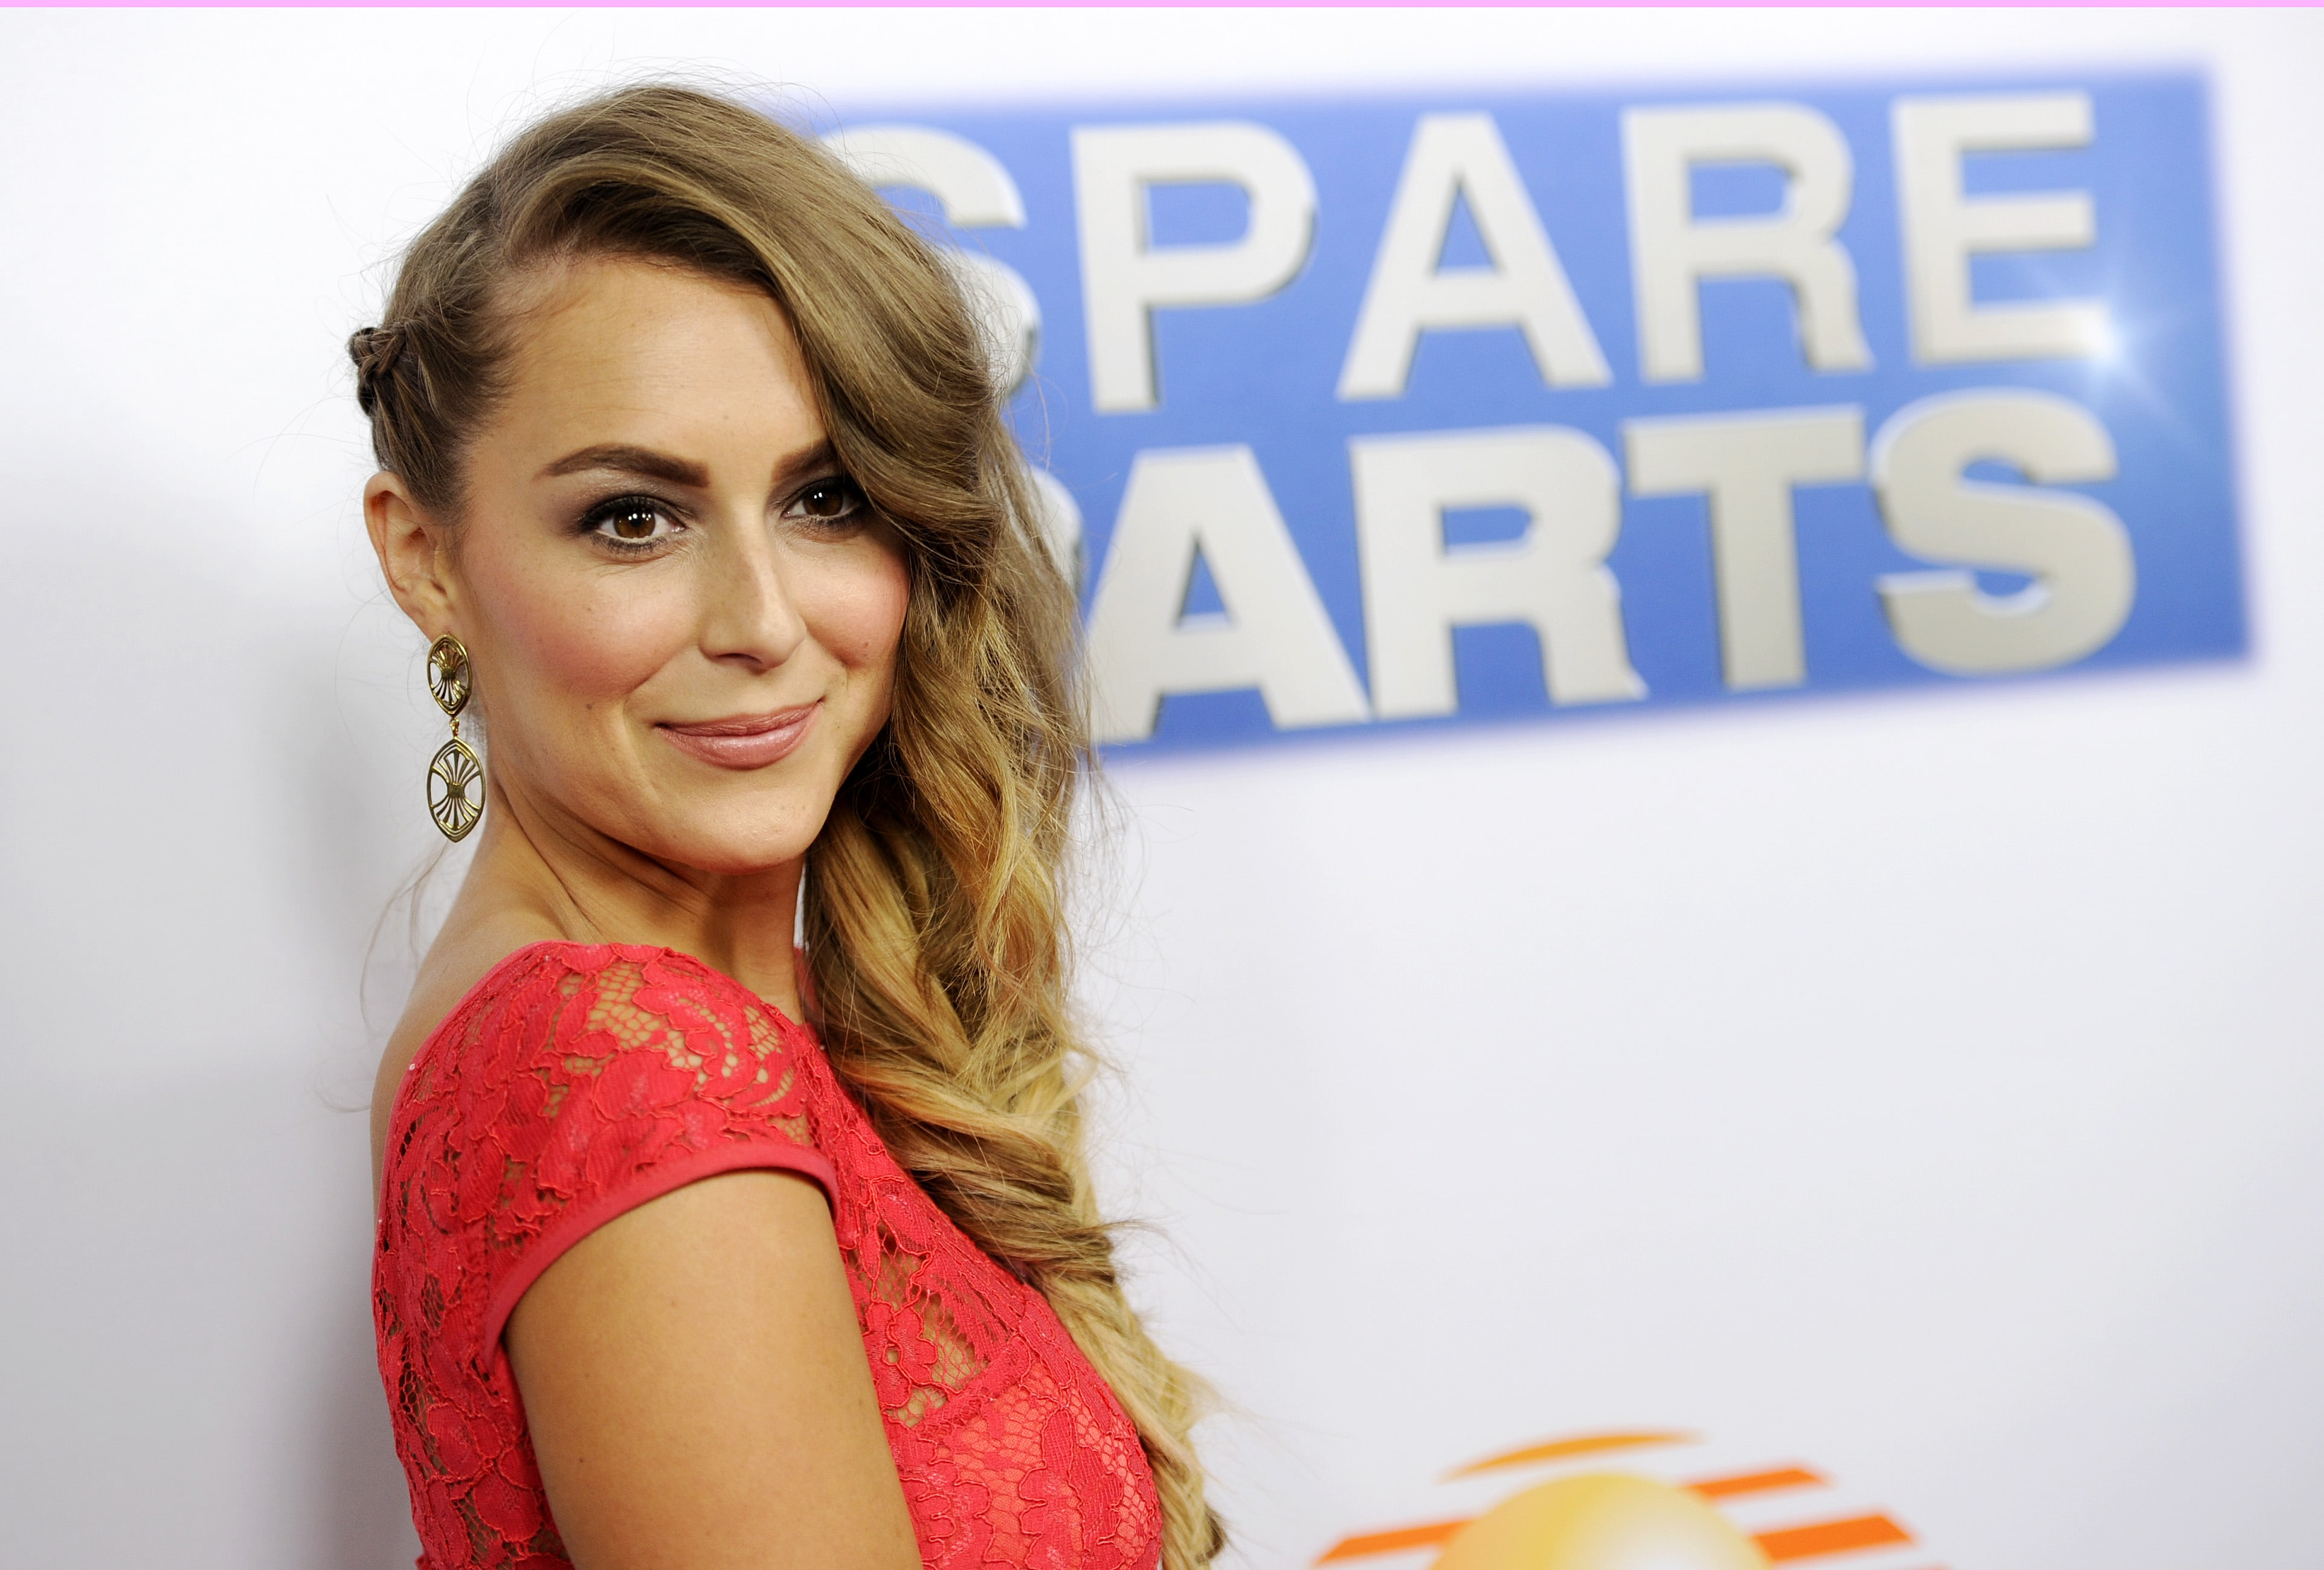 Wide Alexa vega hot hd